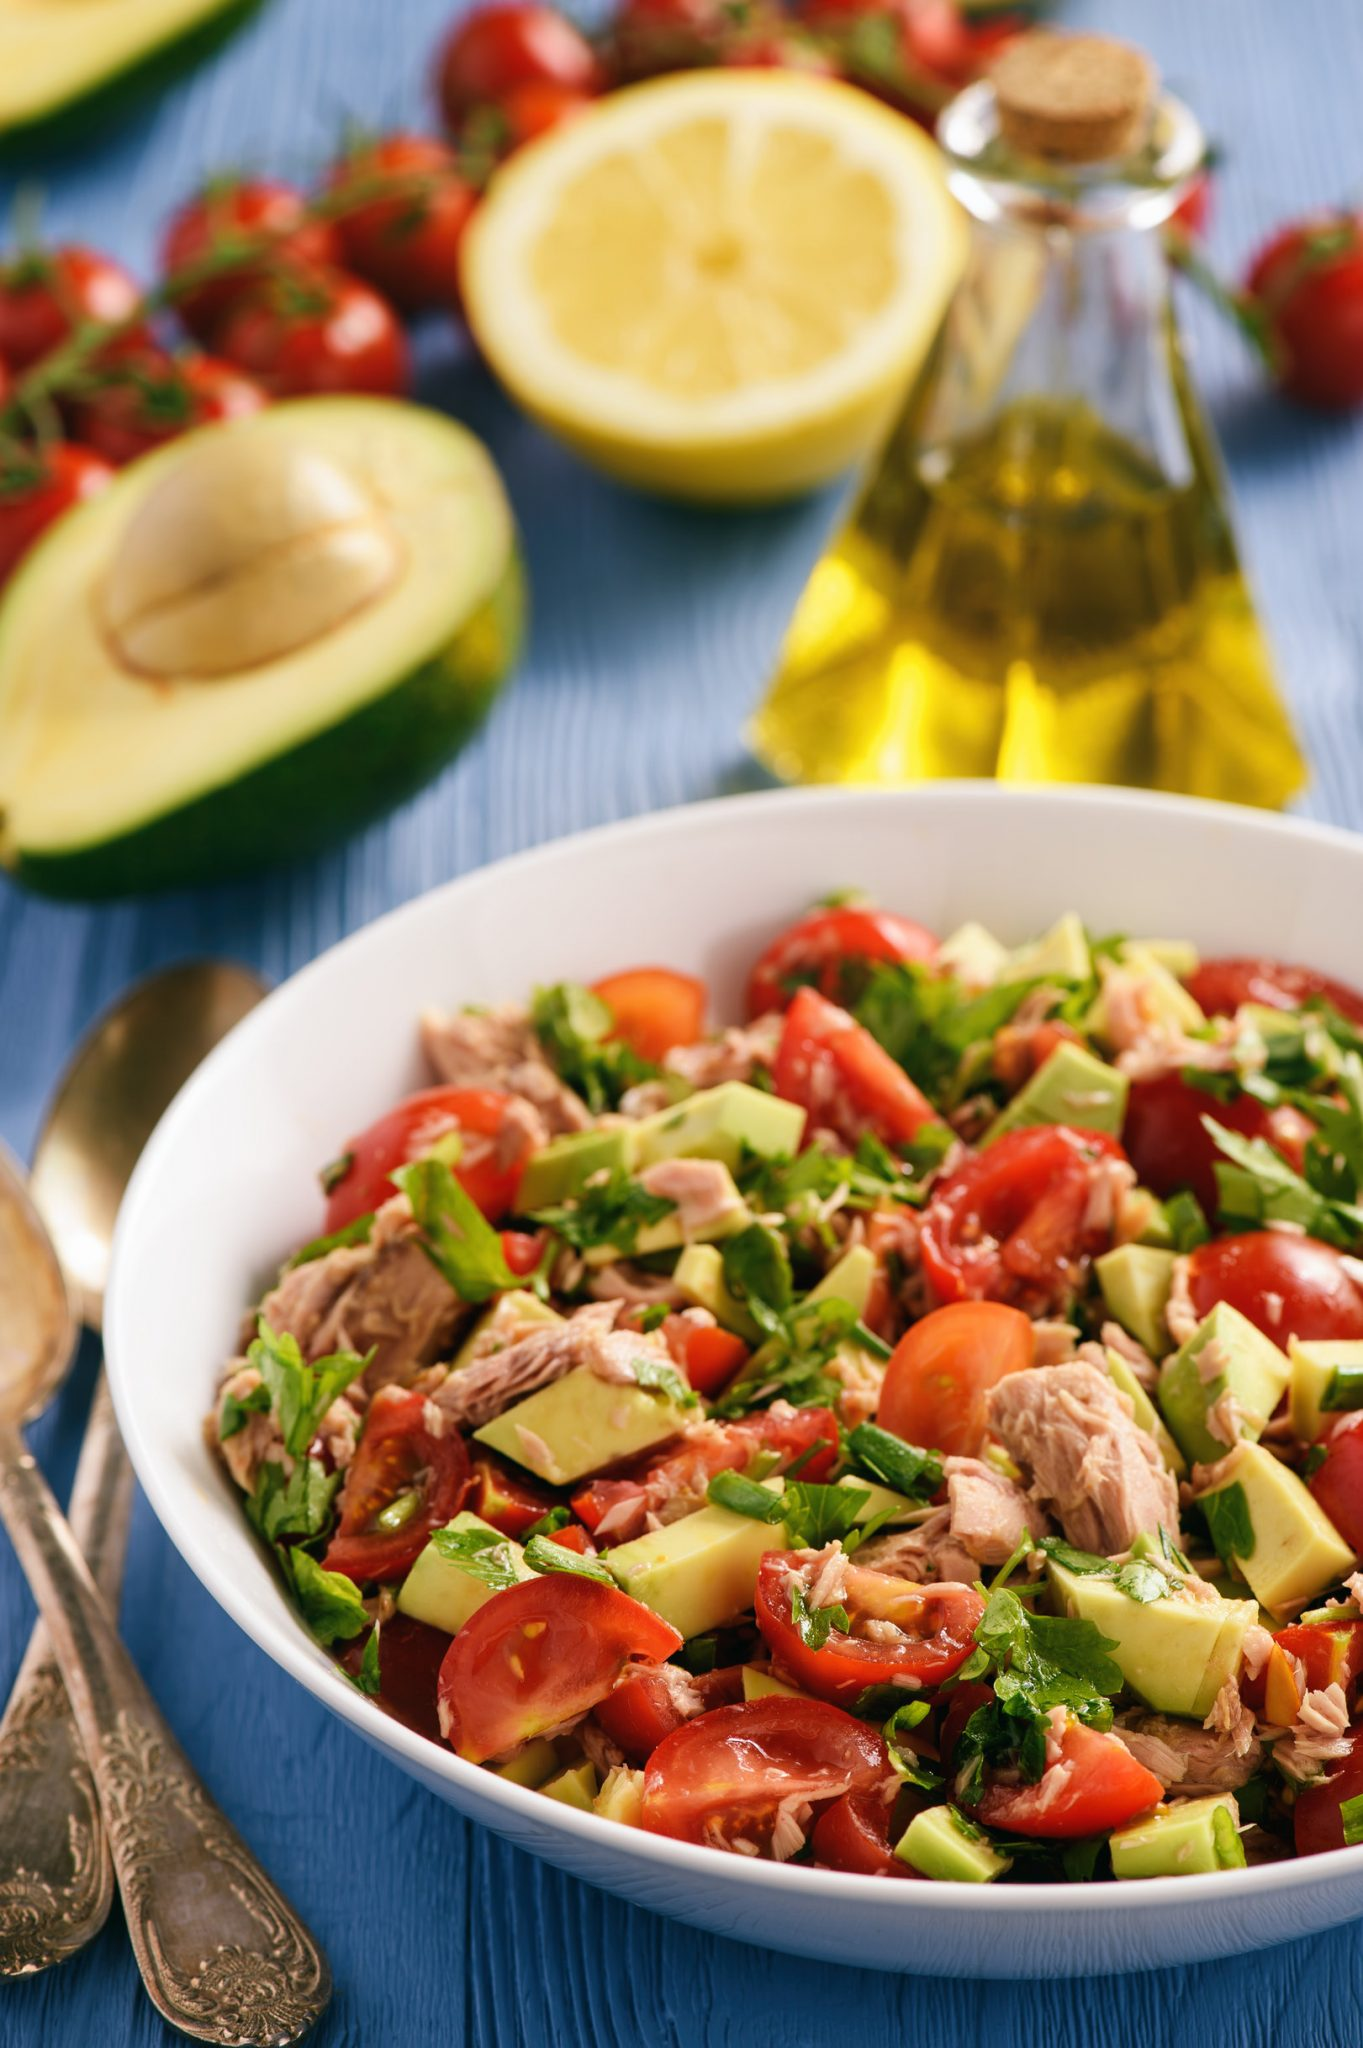 Eat Clean Lemony Avocado Tomato Tuna Salad